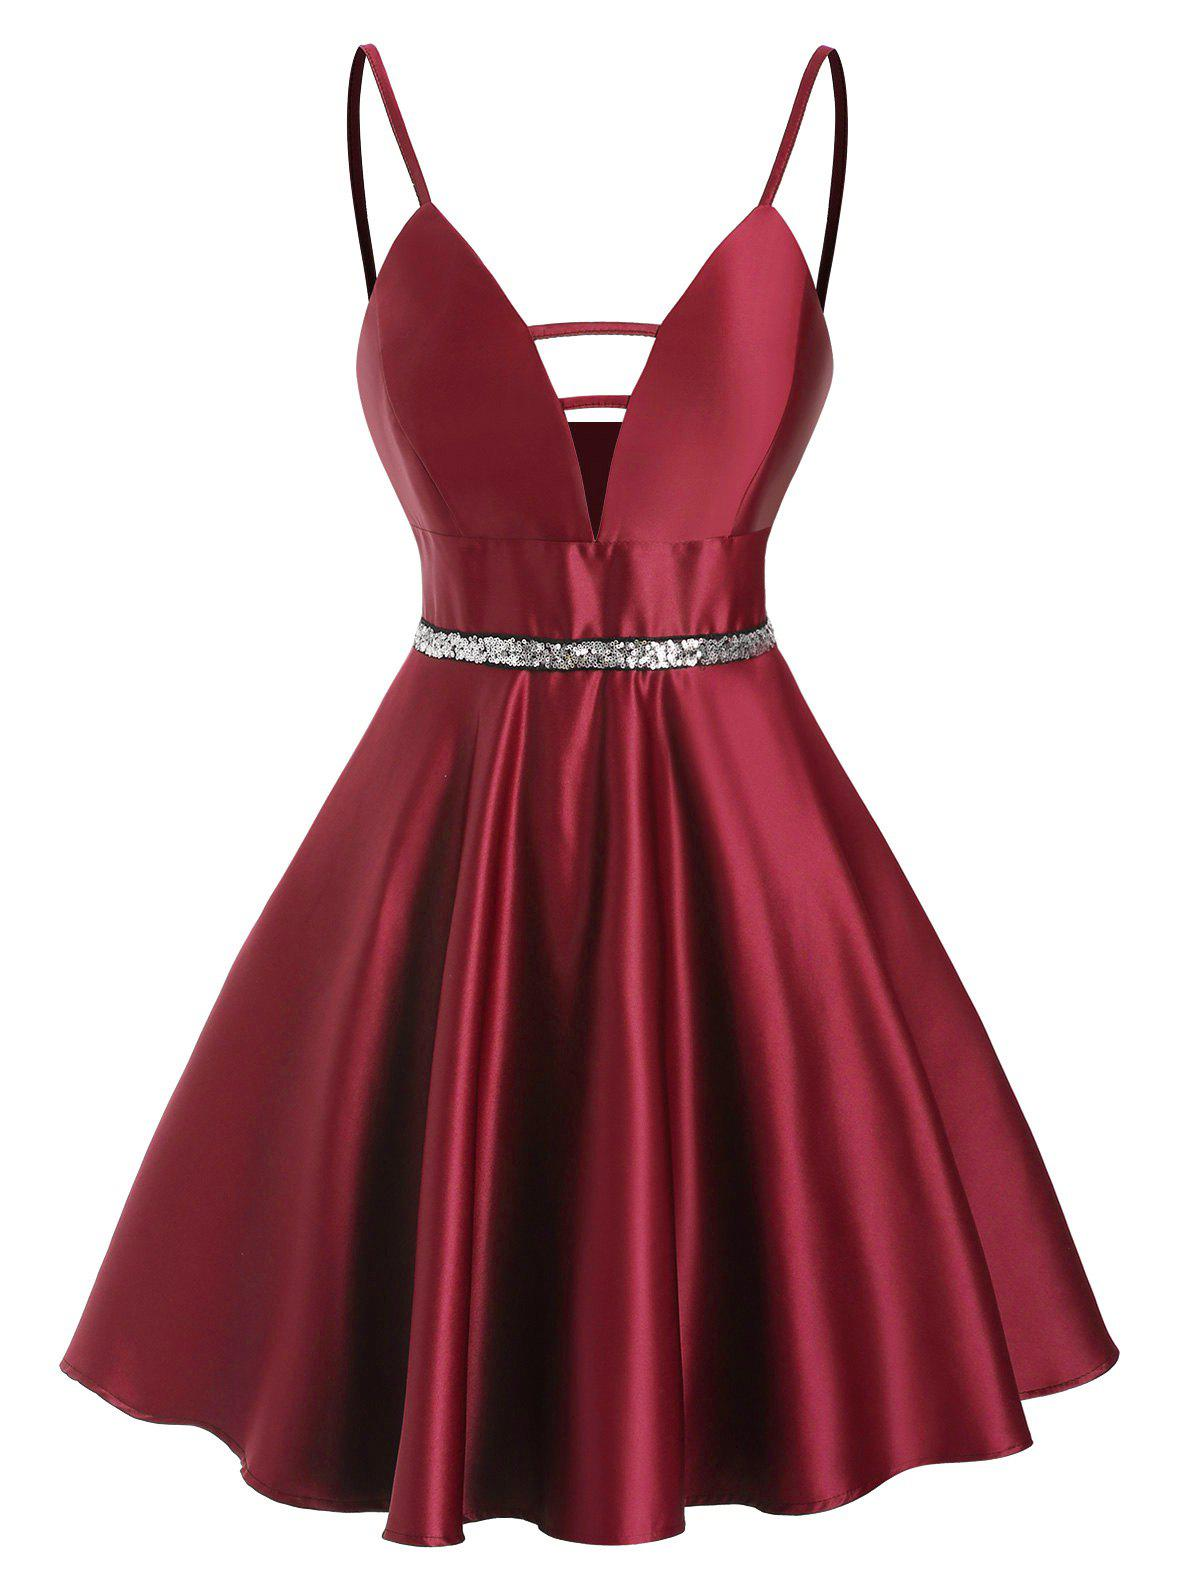 Sequined Ladder Cut Plunge Party Dress - DEEP RED M